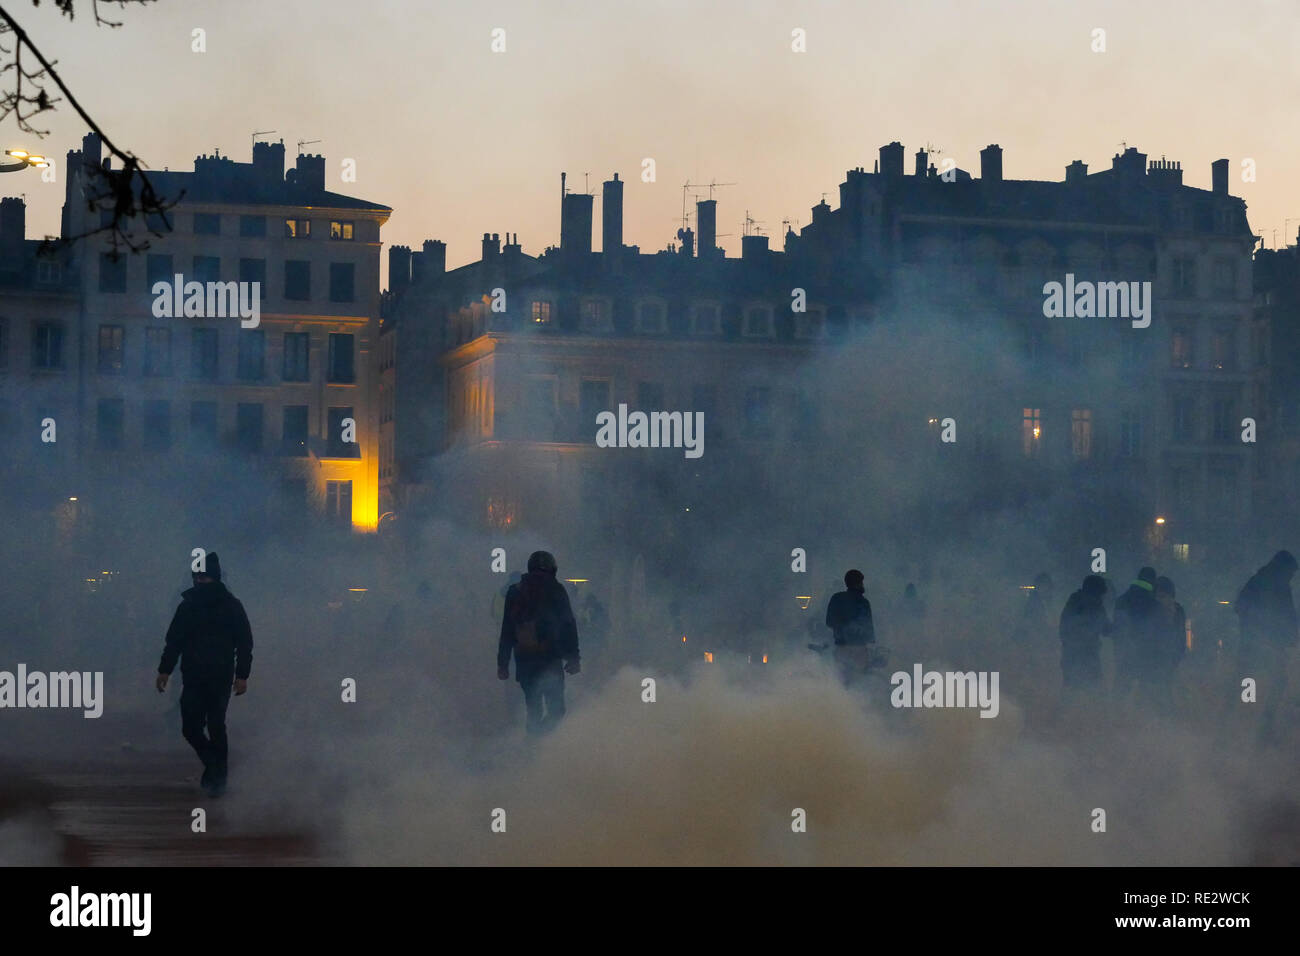 Lyon, France, January 19th 2019: Yellow jackets are seen in Lyon (Central-Eastern France) on january 19, 2019 evening as they take part to the 10th day of protest against french goverment reform projetct. Credit Photo: Serge Mouraret/Alamy Live News - Stock Image